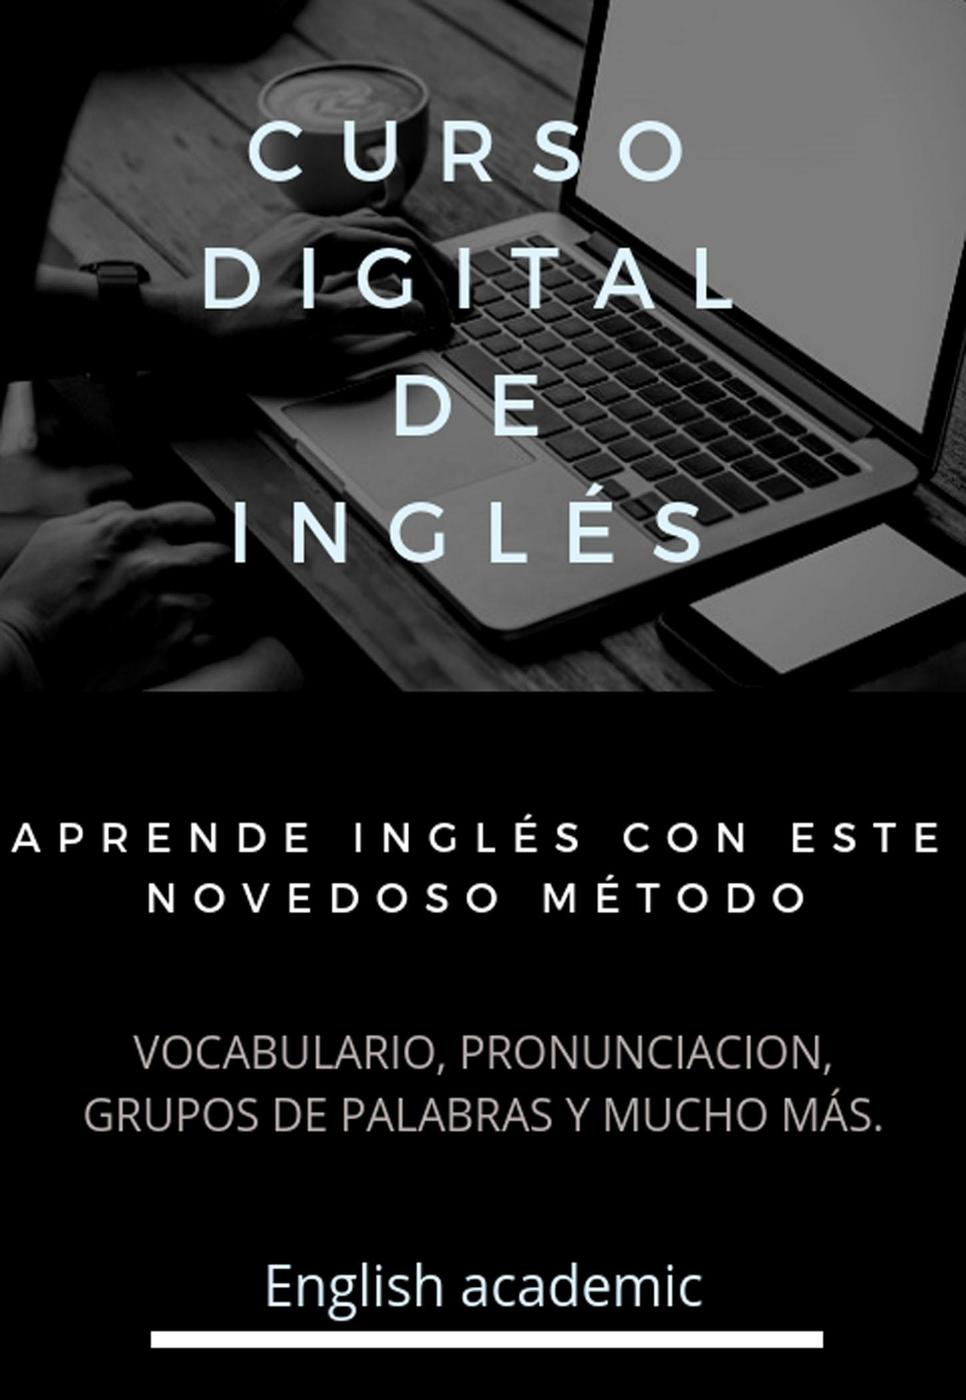 Curso digital de inglés [electronic resource]